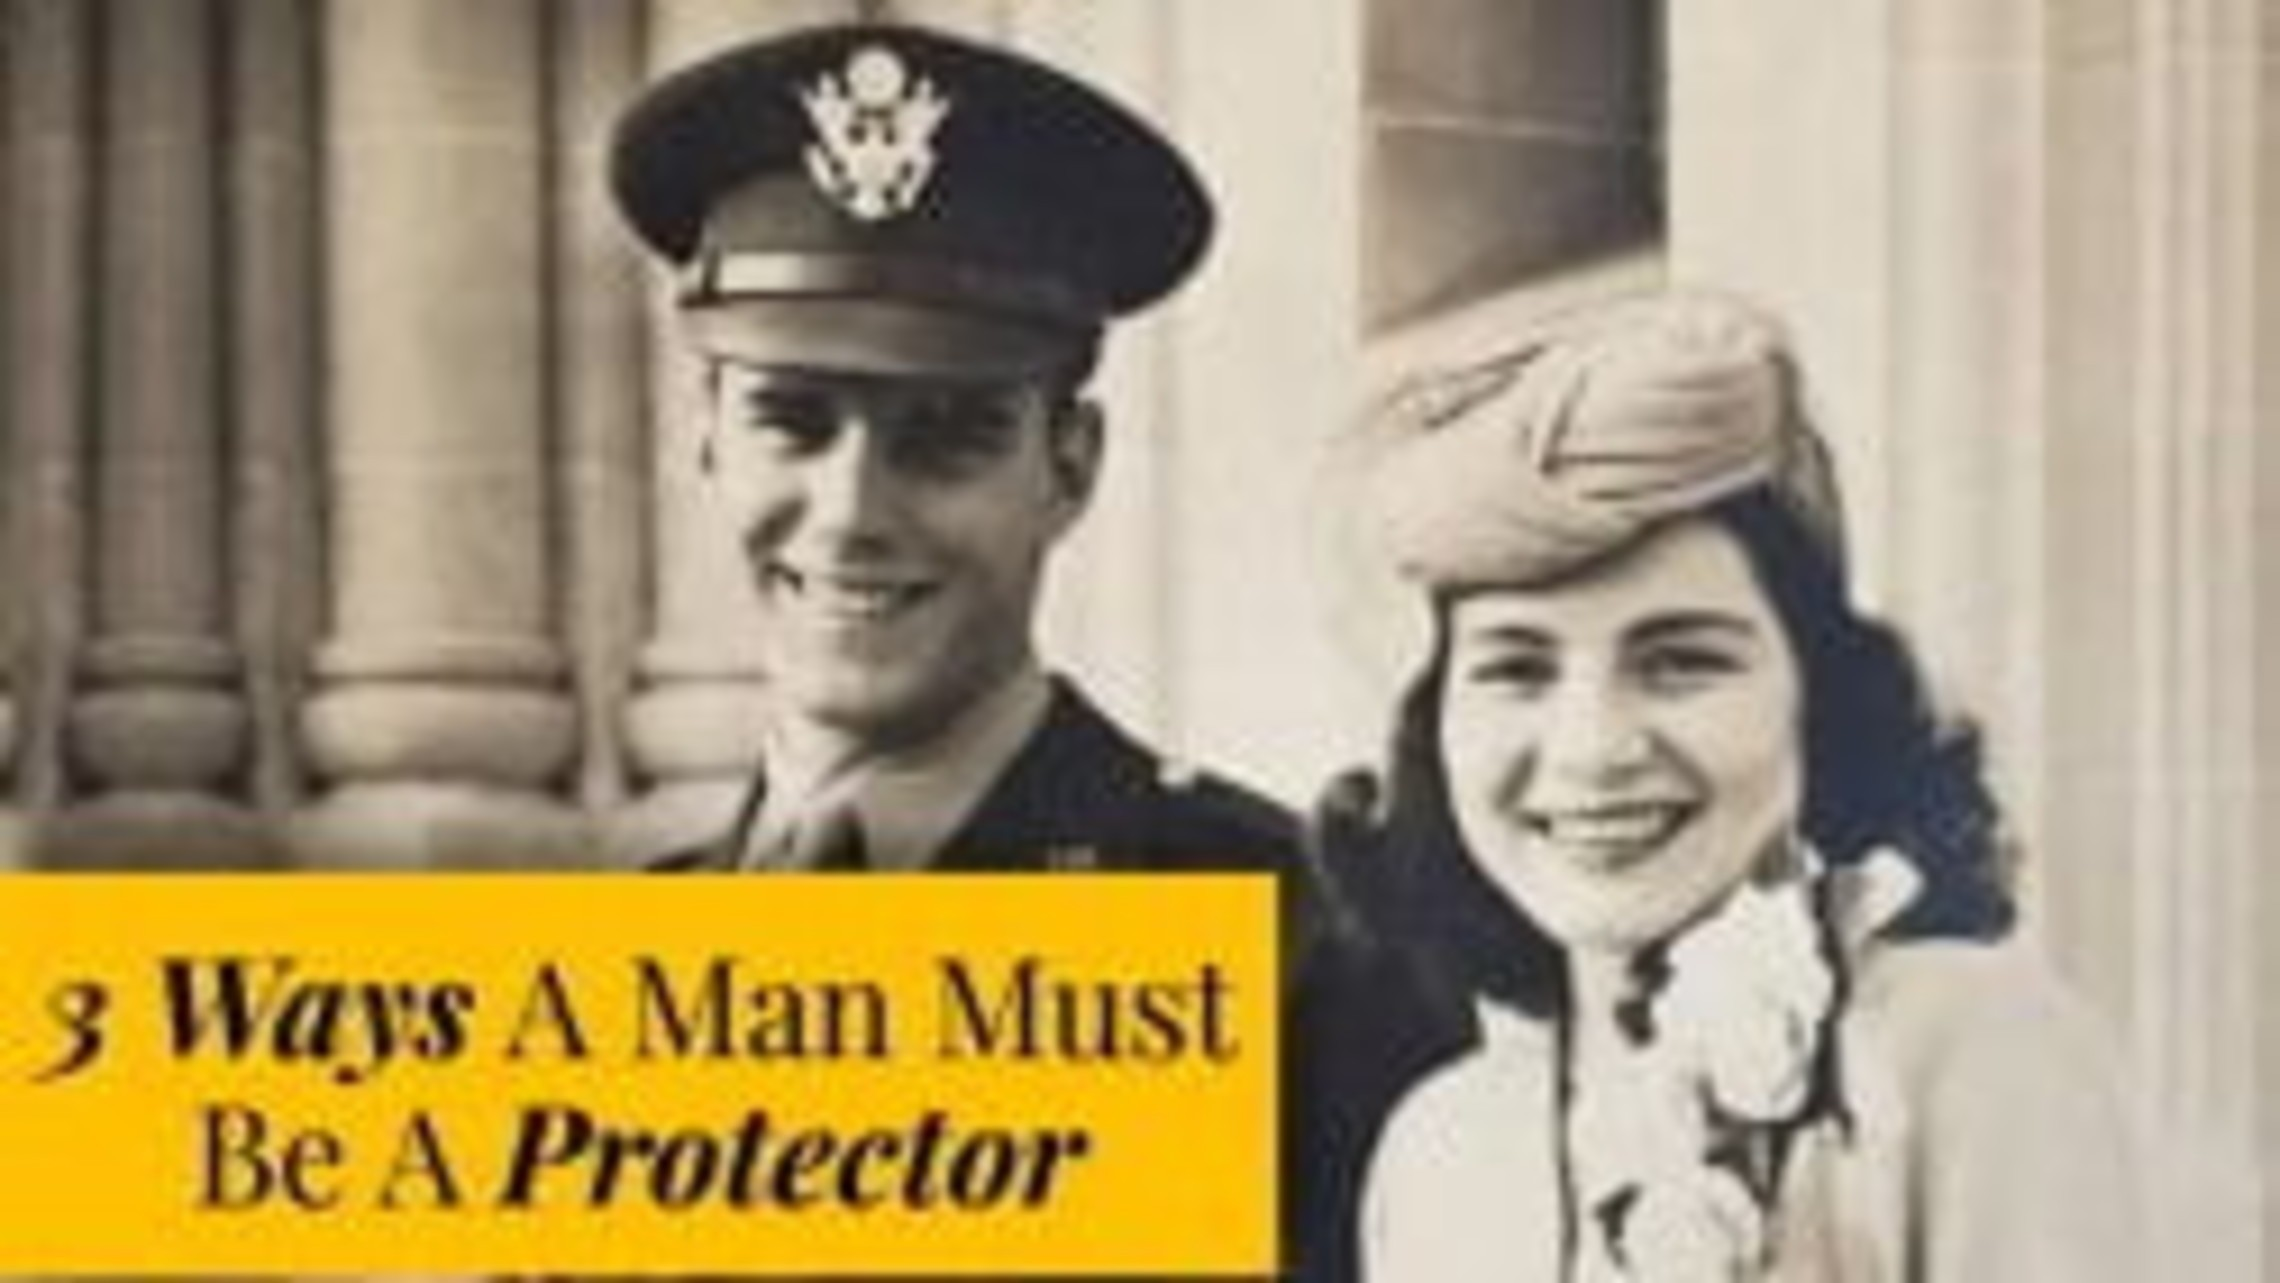 3 Ways A Man Must Be A Protector